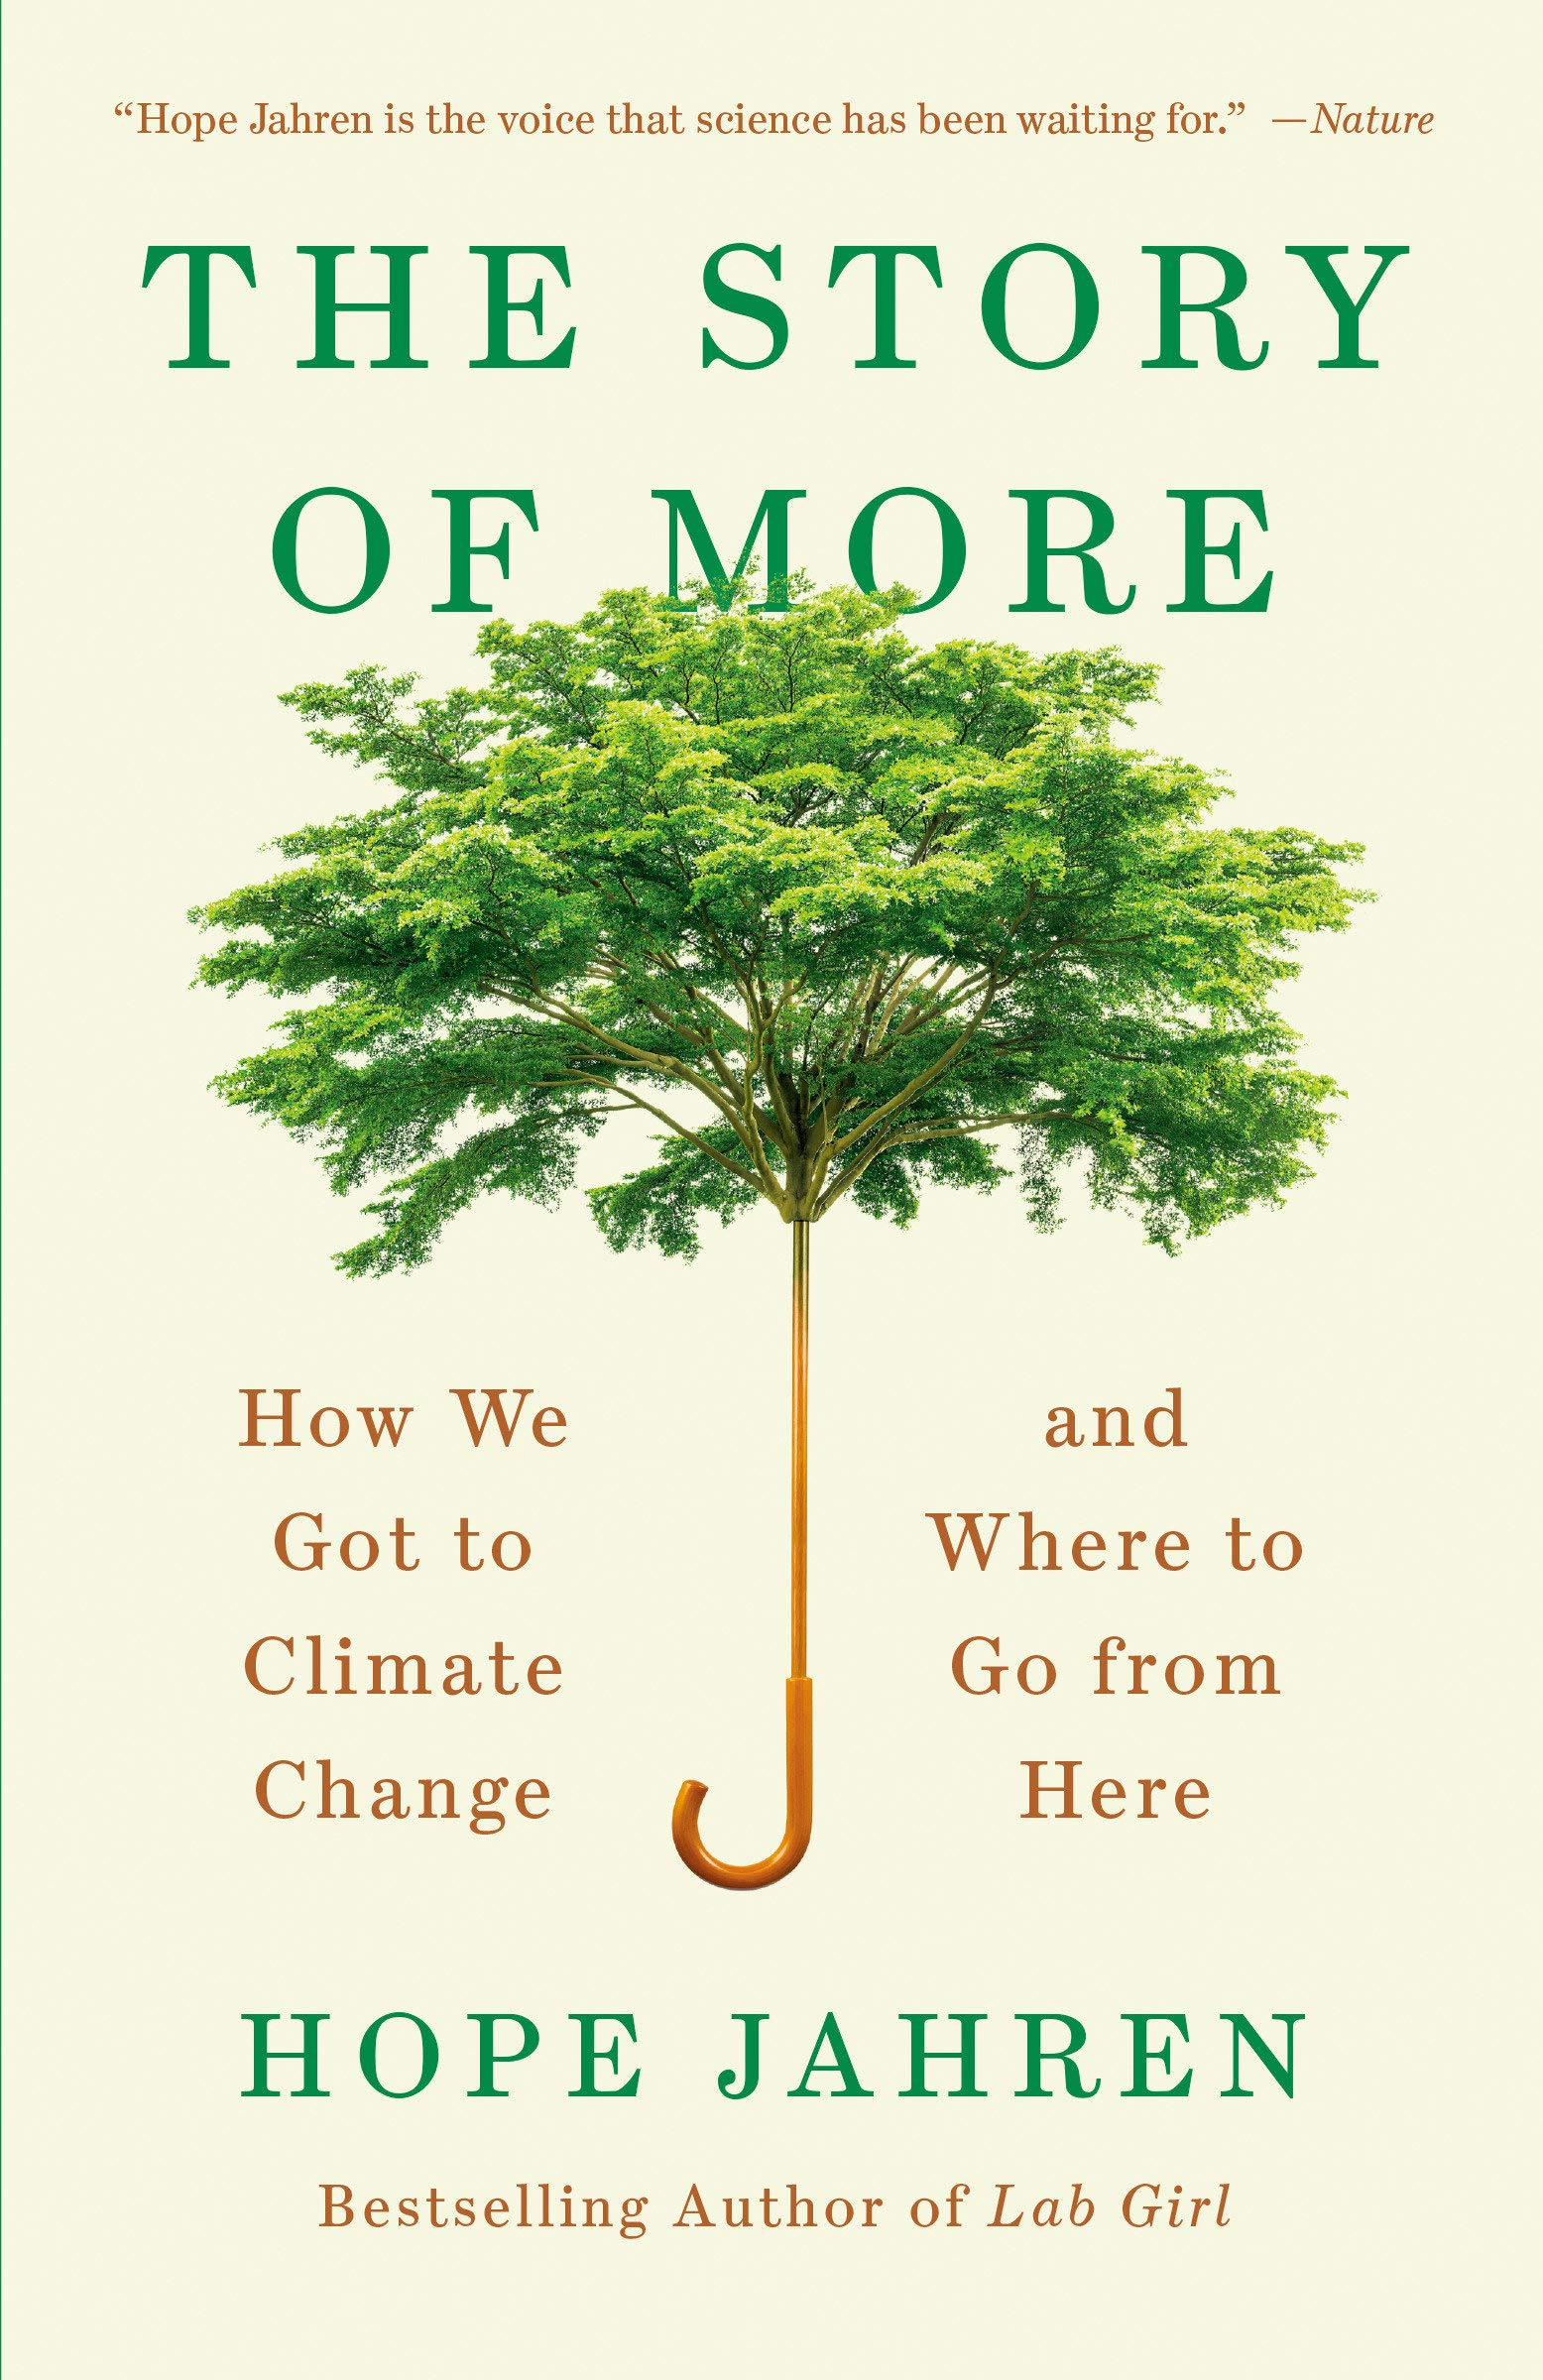 The Story of More: How We Got to Climate Change and Where to Go from Here book cover